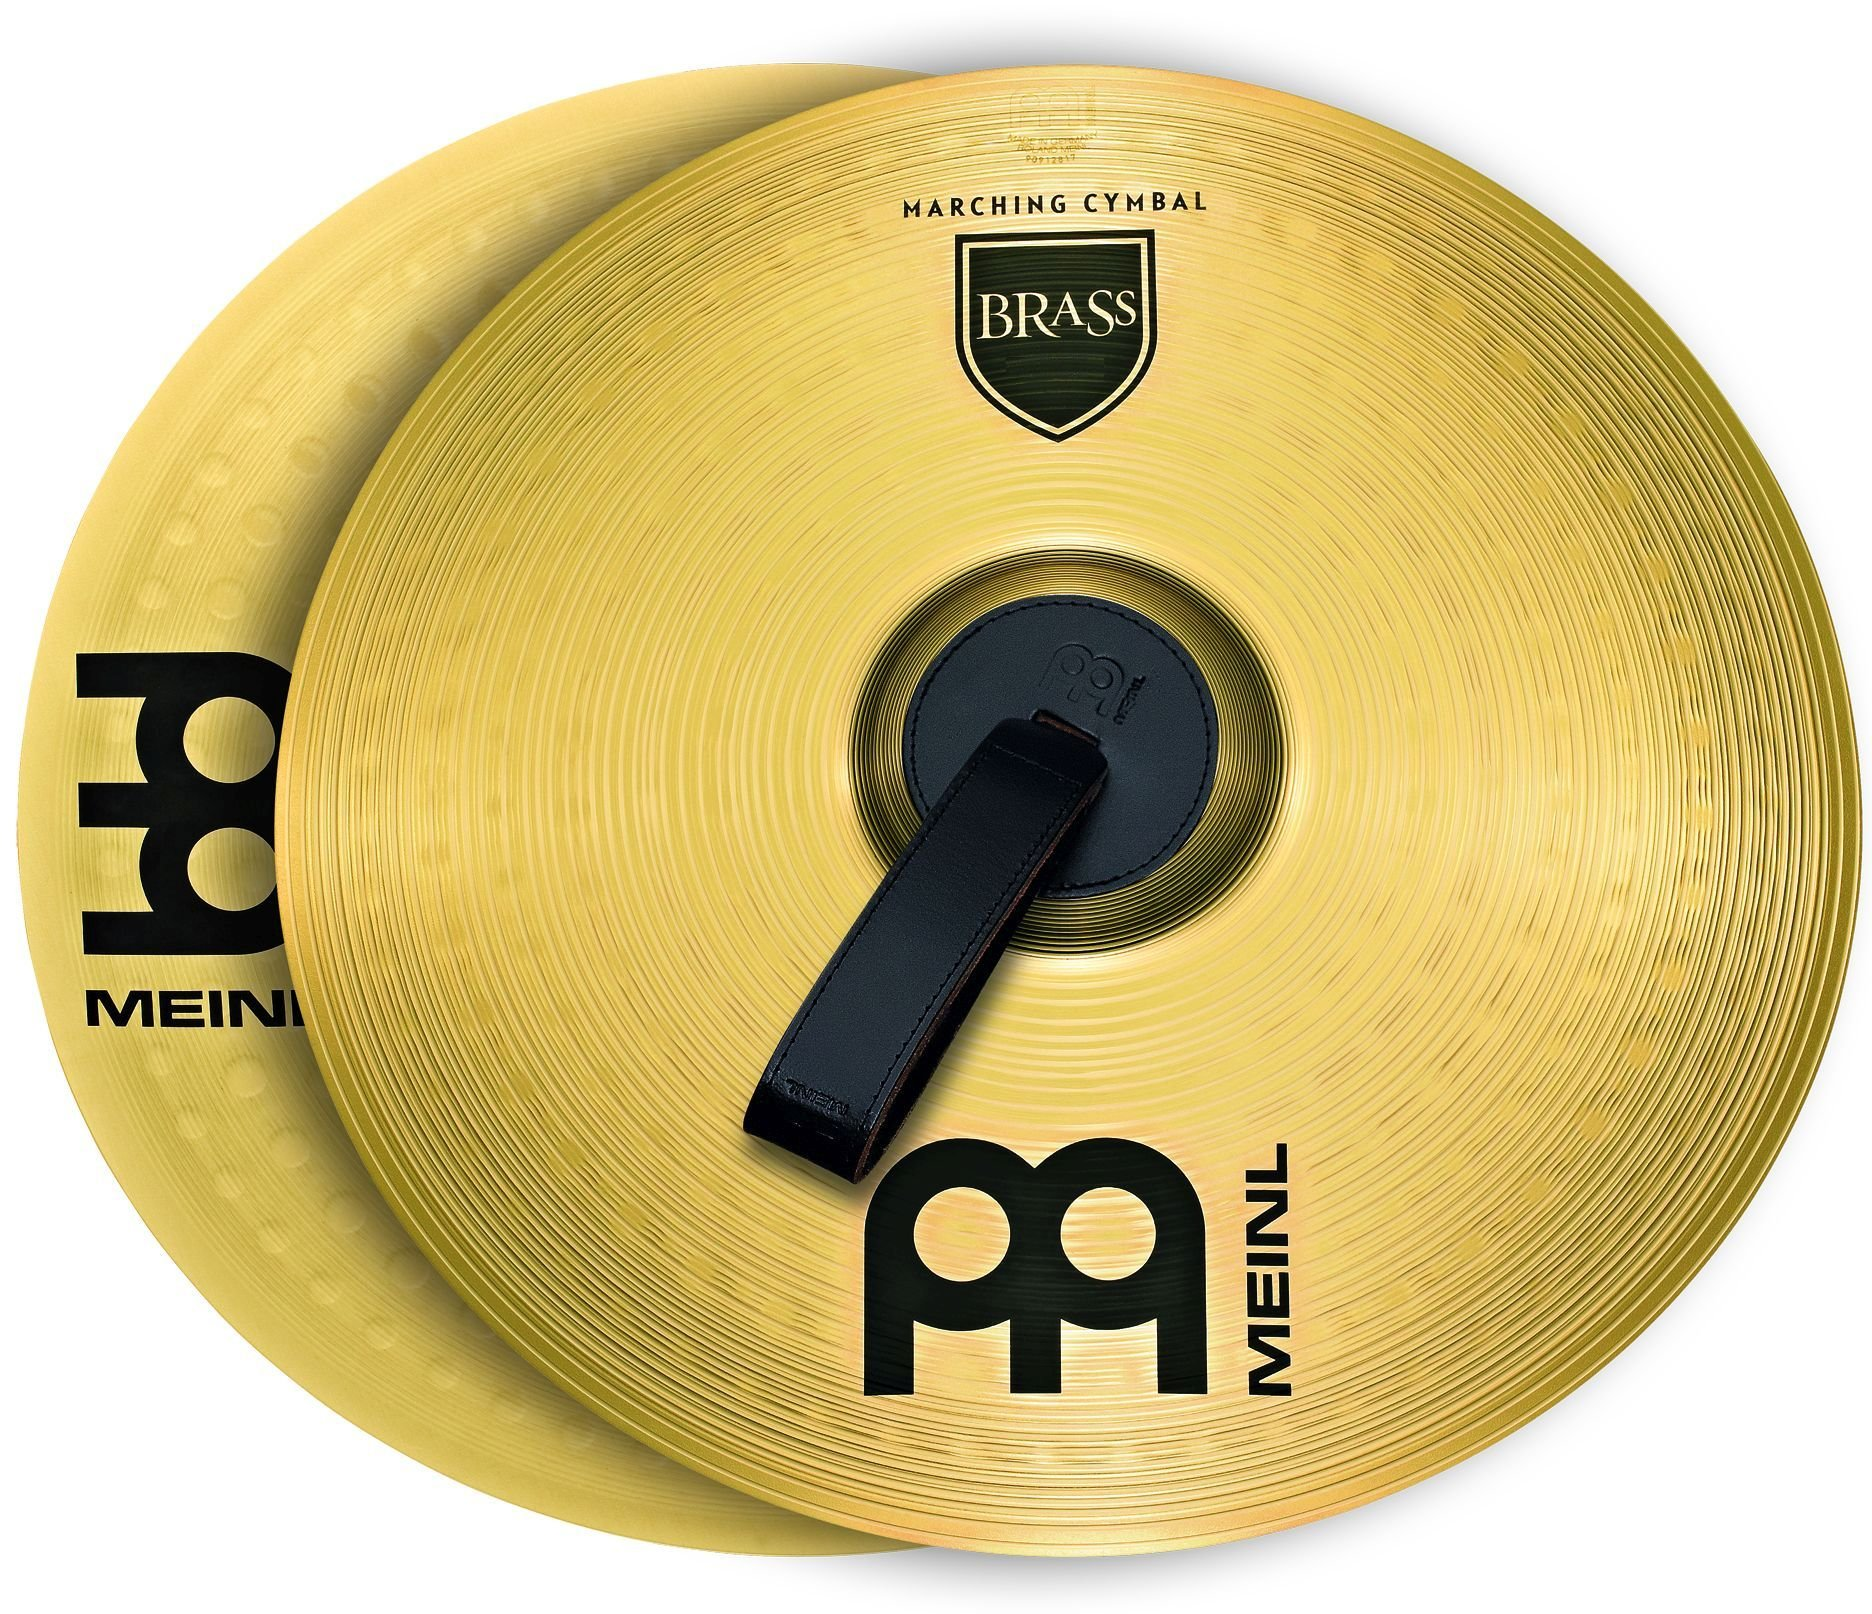 Meinl 14'' Marching Cymbal Pair with Straps - Brass Alloy Traditional Finish - Made In Germany, 2-YEAR WARRANTY (MA-BR-14M)